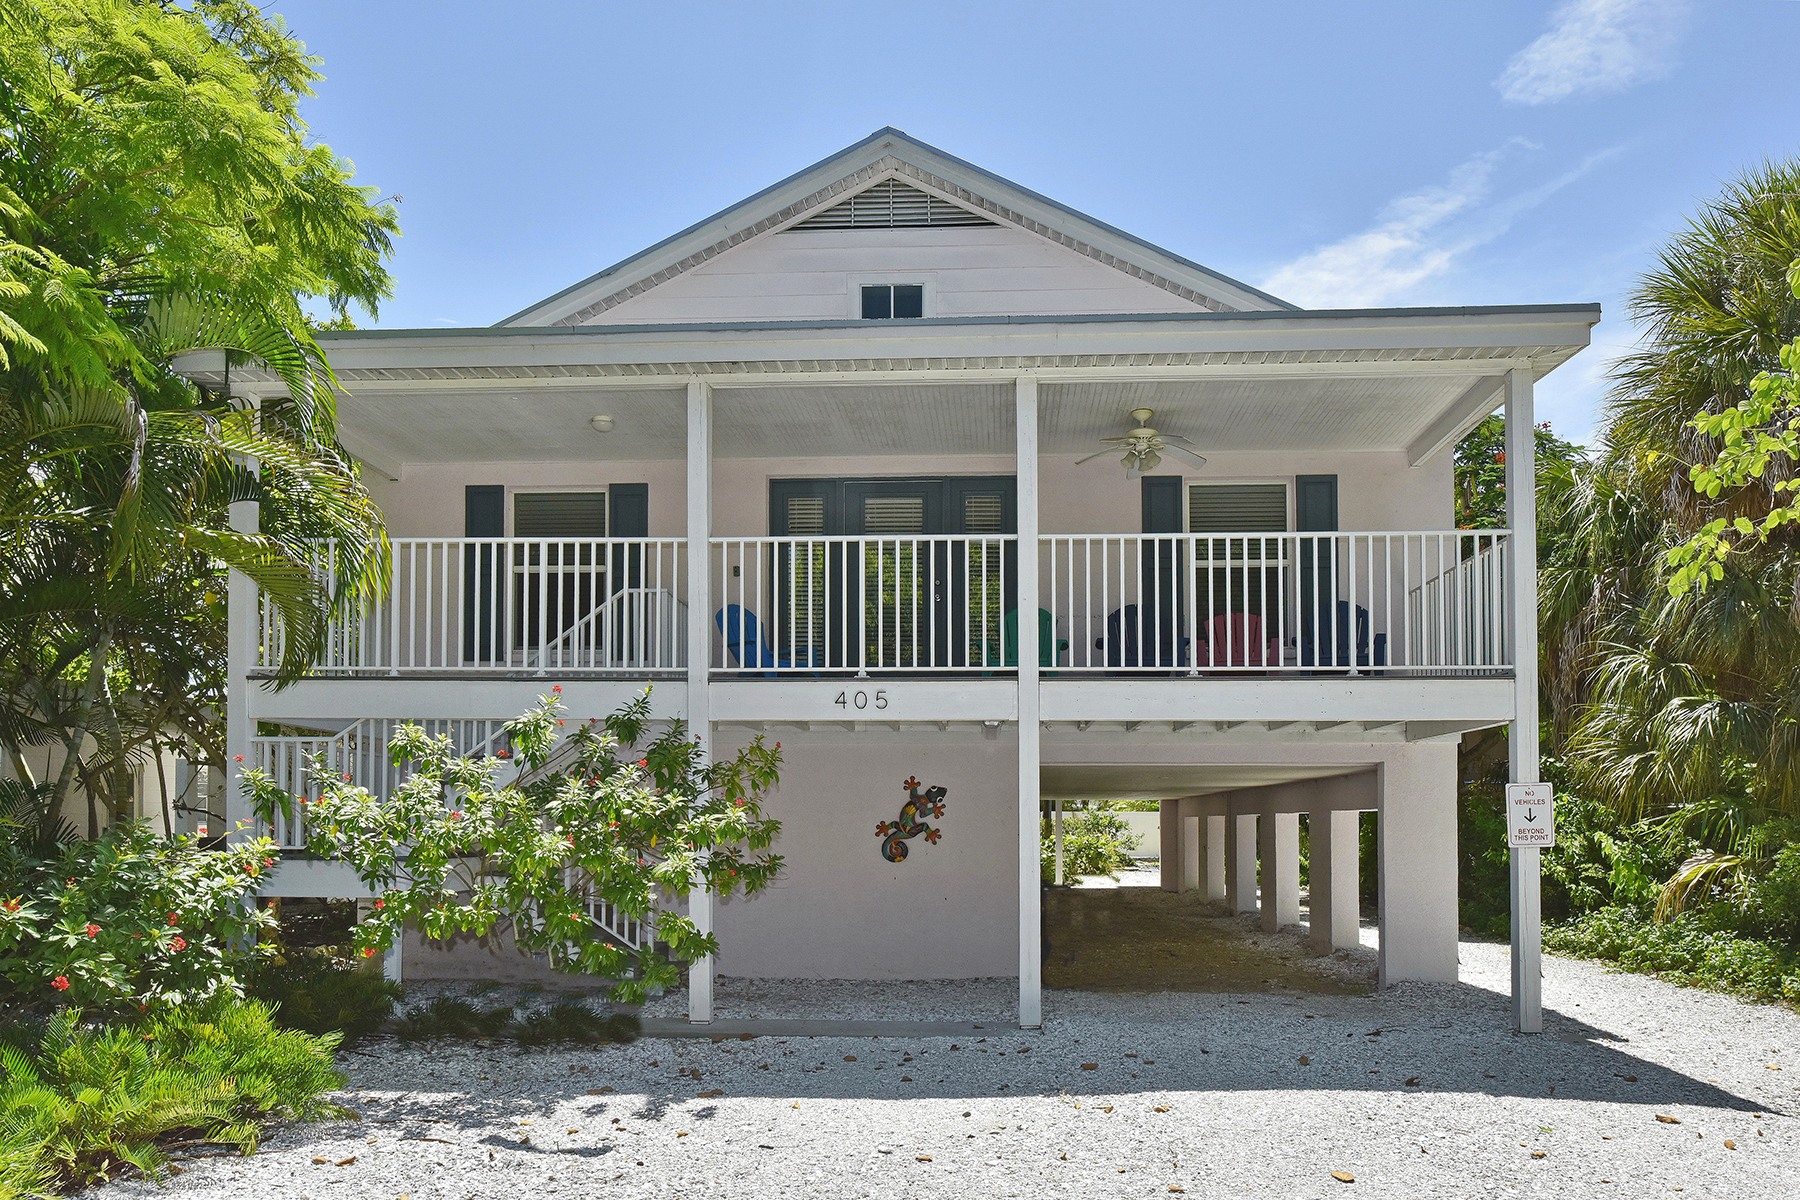 Single Family Home for Sale at ANNA MARIA 405 Spring Ave Anna Maria, Florida, 34216 United States